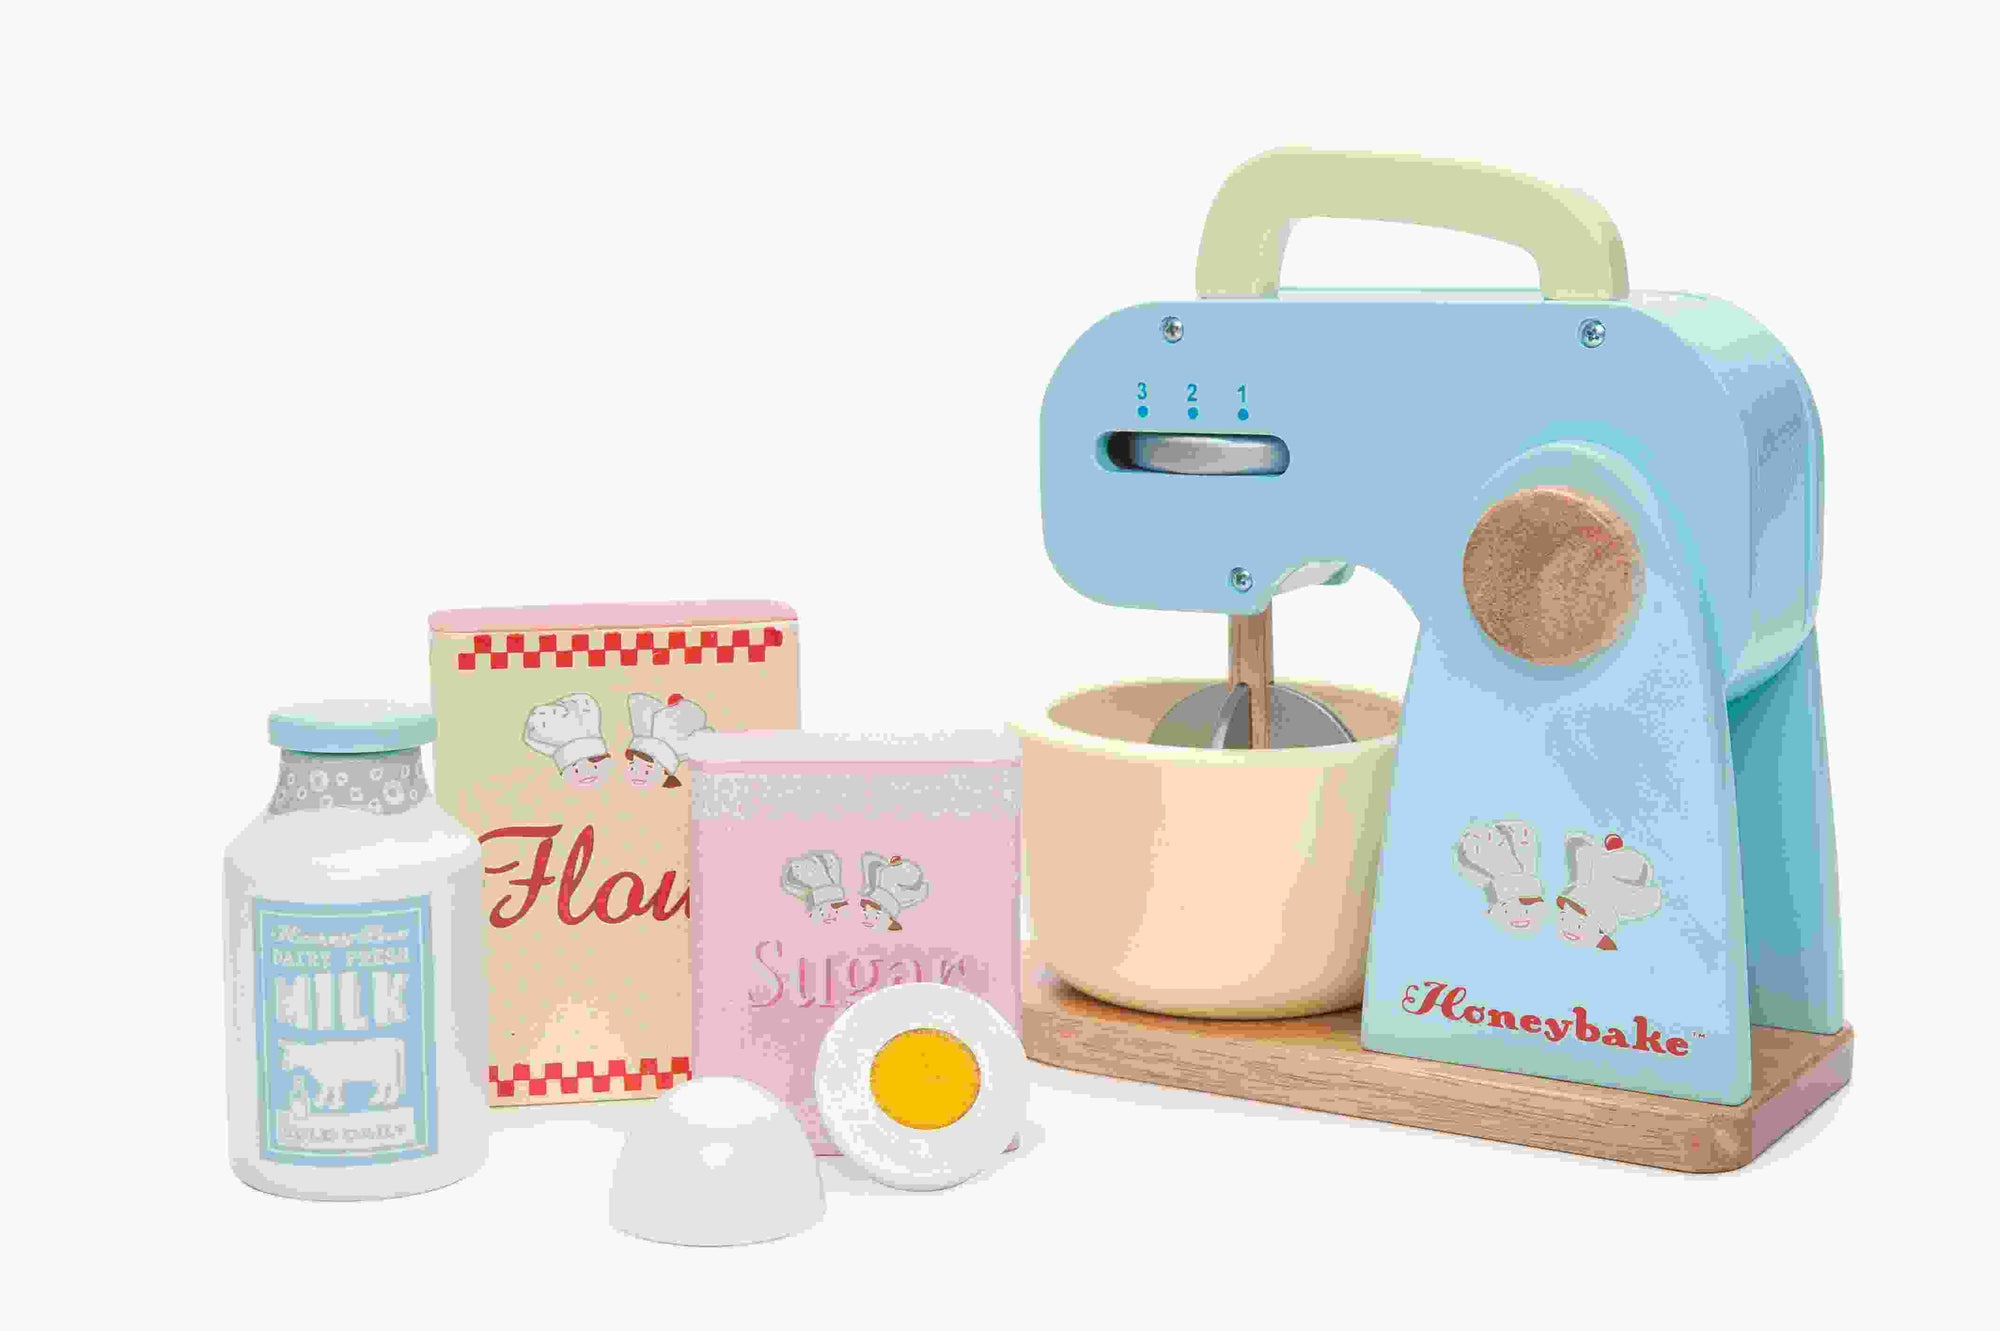 Honeybake Mixer Set - Le Toy Van